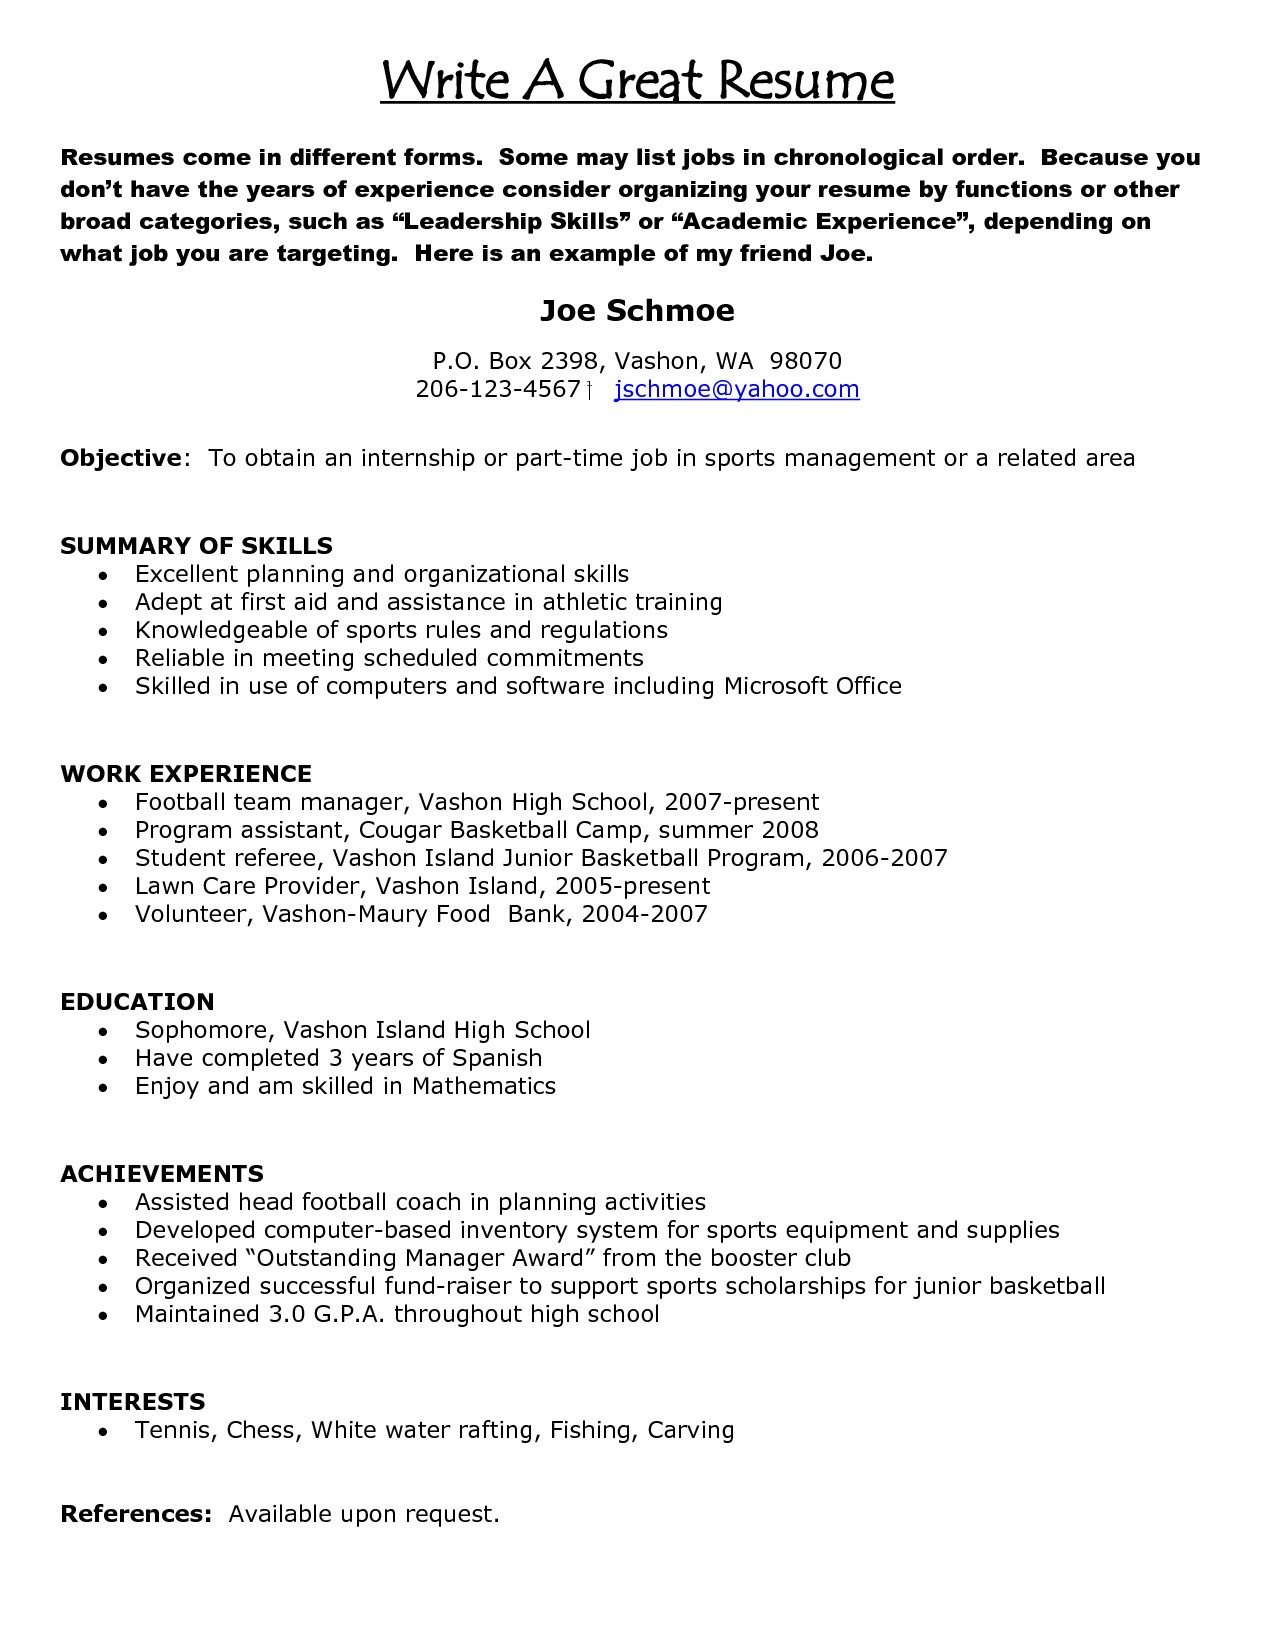 Is My Perfect Resume Safe - My Perfect Resume Contact Unique Beautiful Development Resume Sample